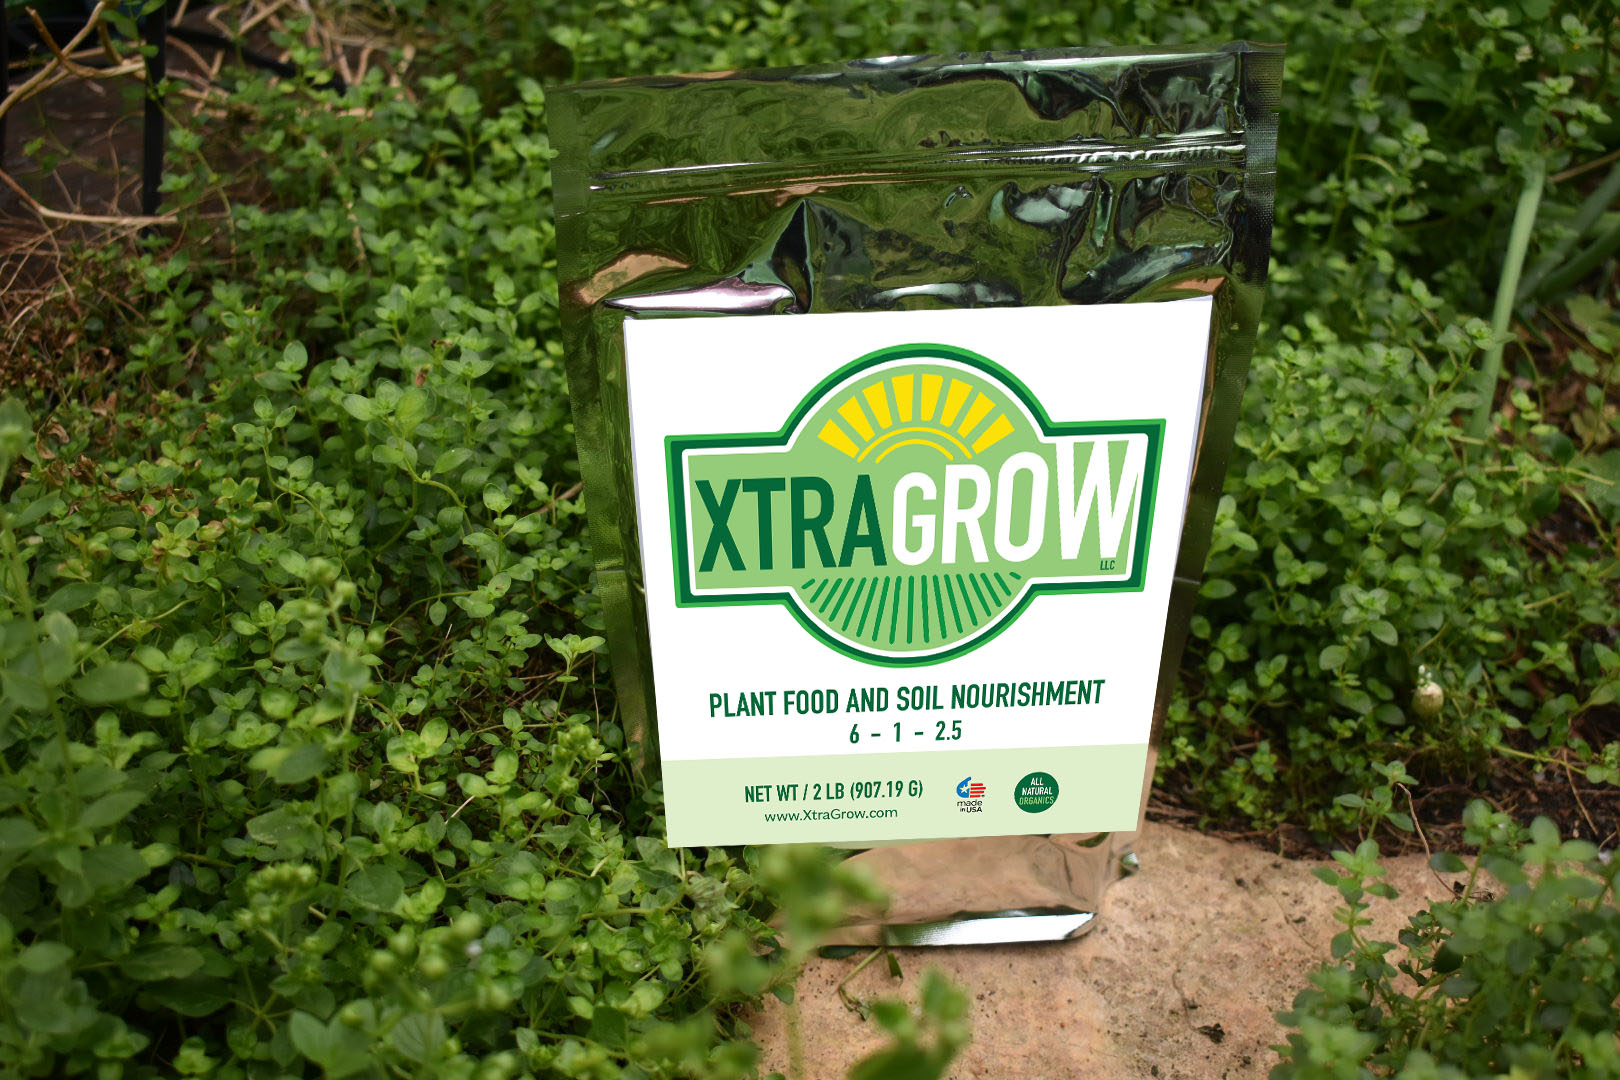 Premium Organic Plant Based Fertilizer Video Xtragrow in plants grown with Xtragrow 3